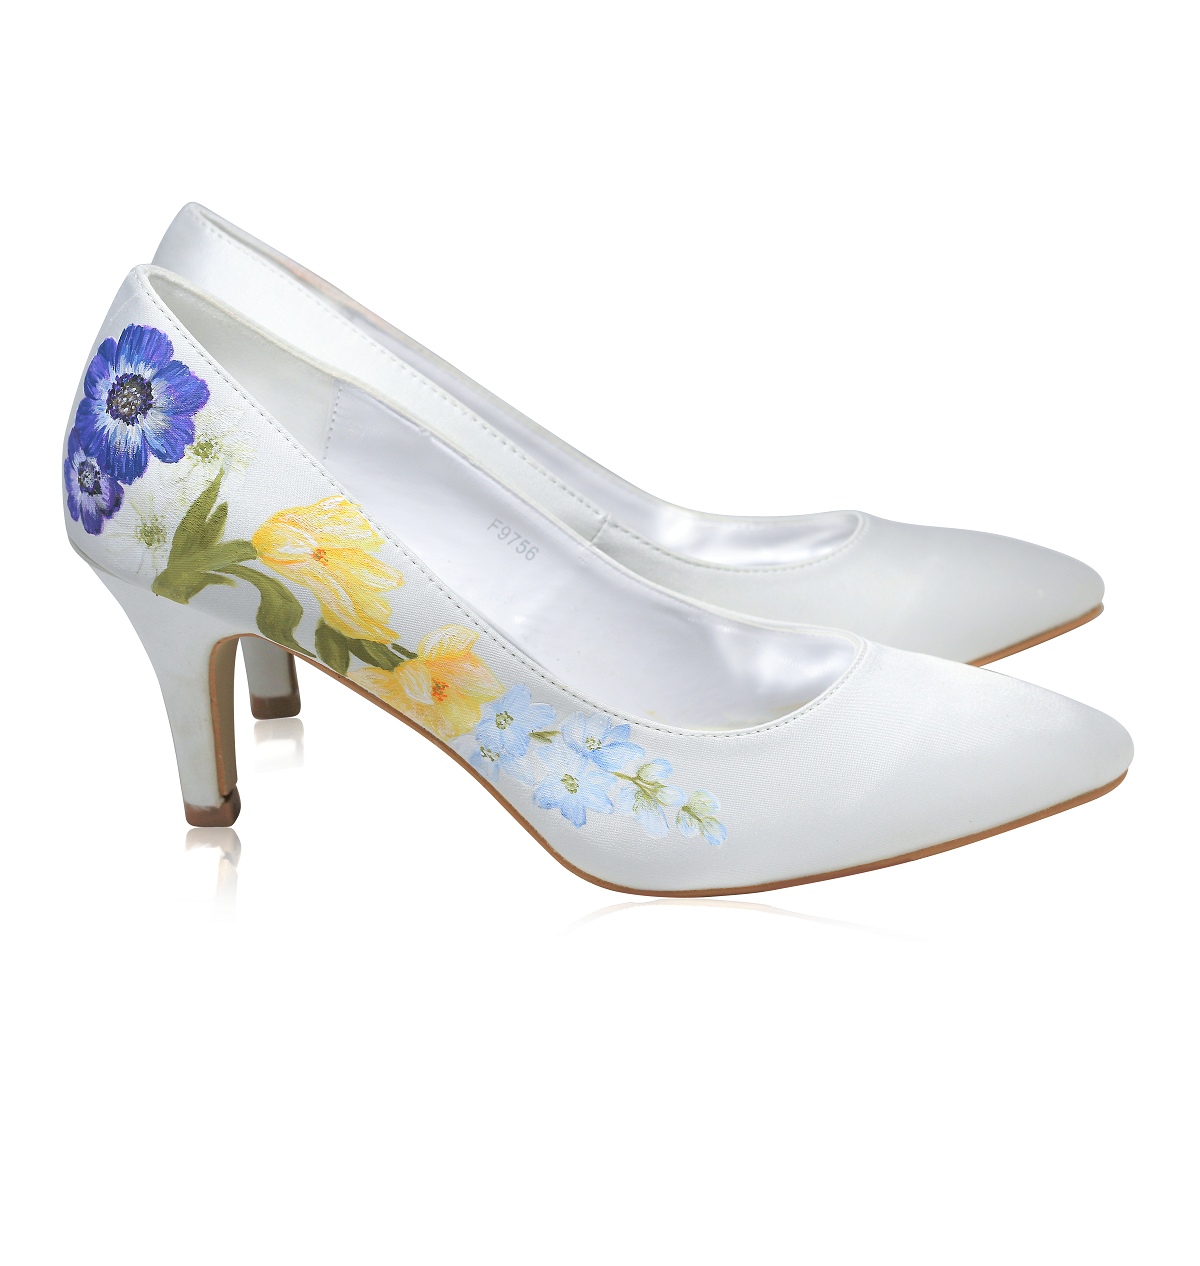 Wildflower print wedding shoe with delphiniums and starflower, perfect for a woodland wedding